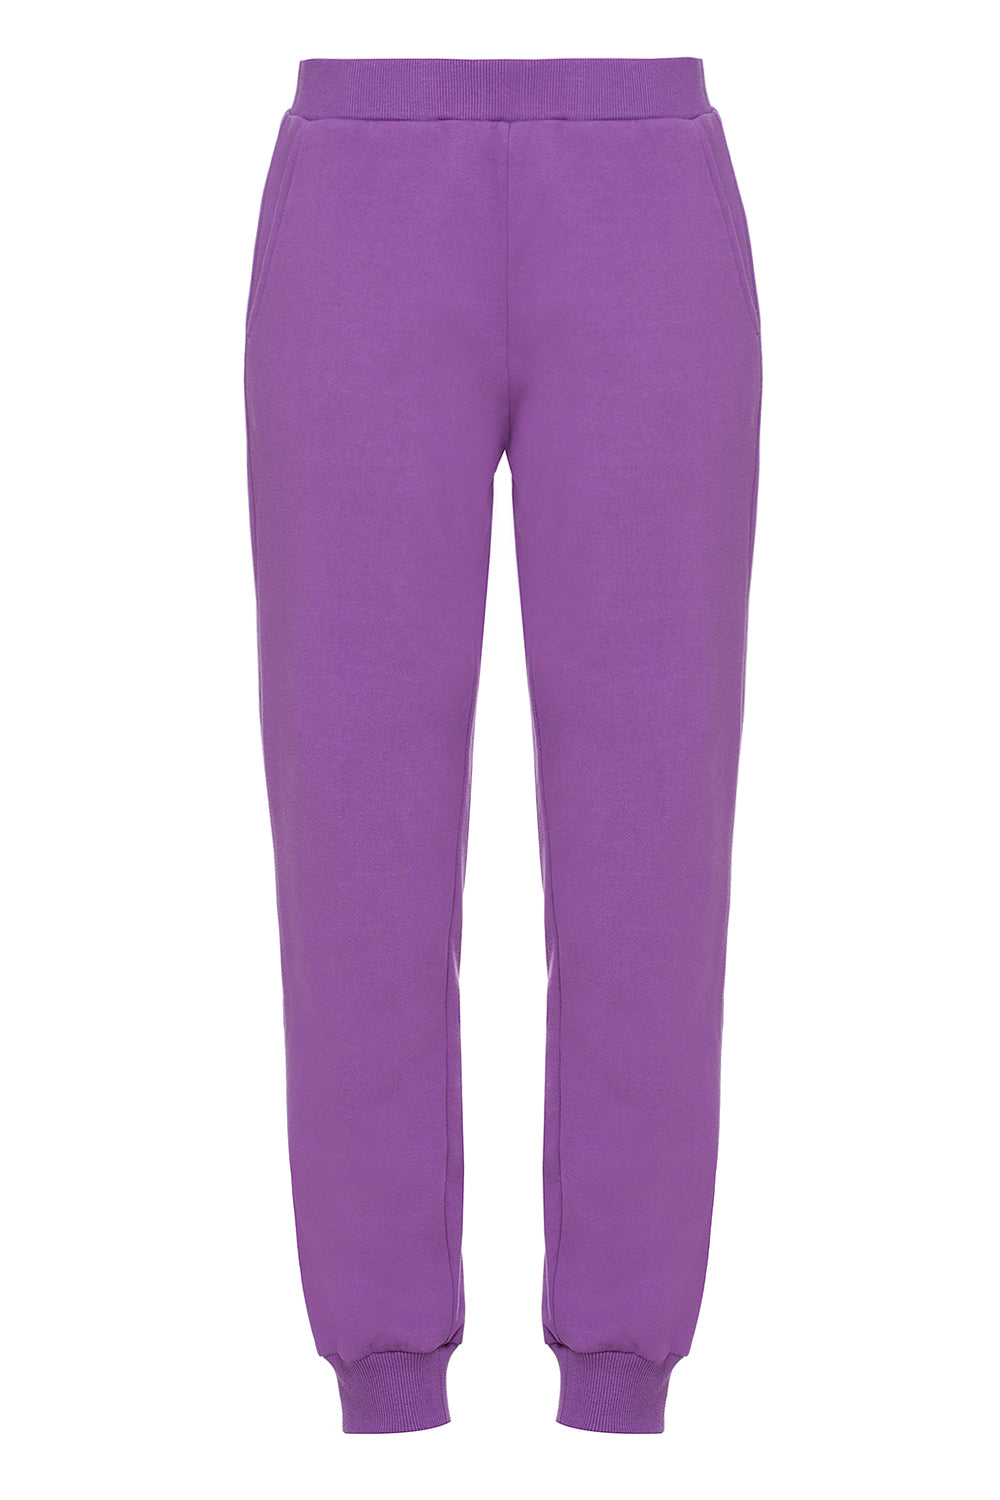 Purple sweatpants